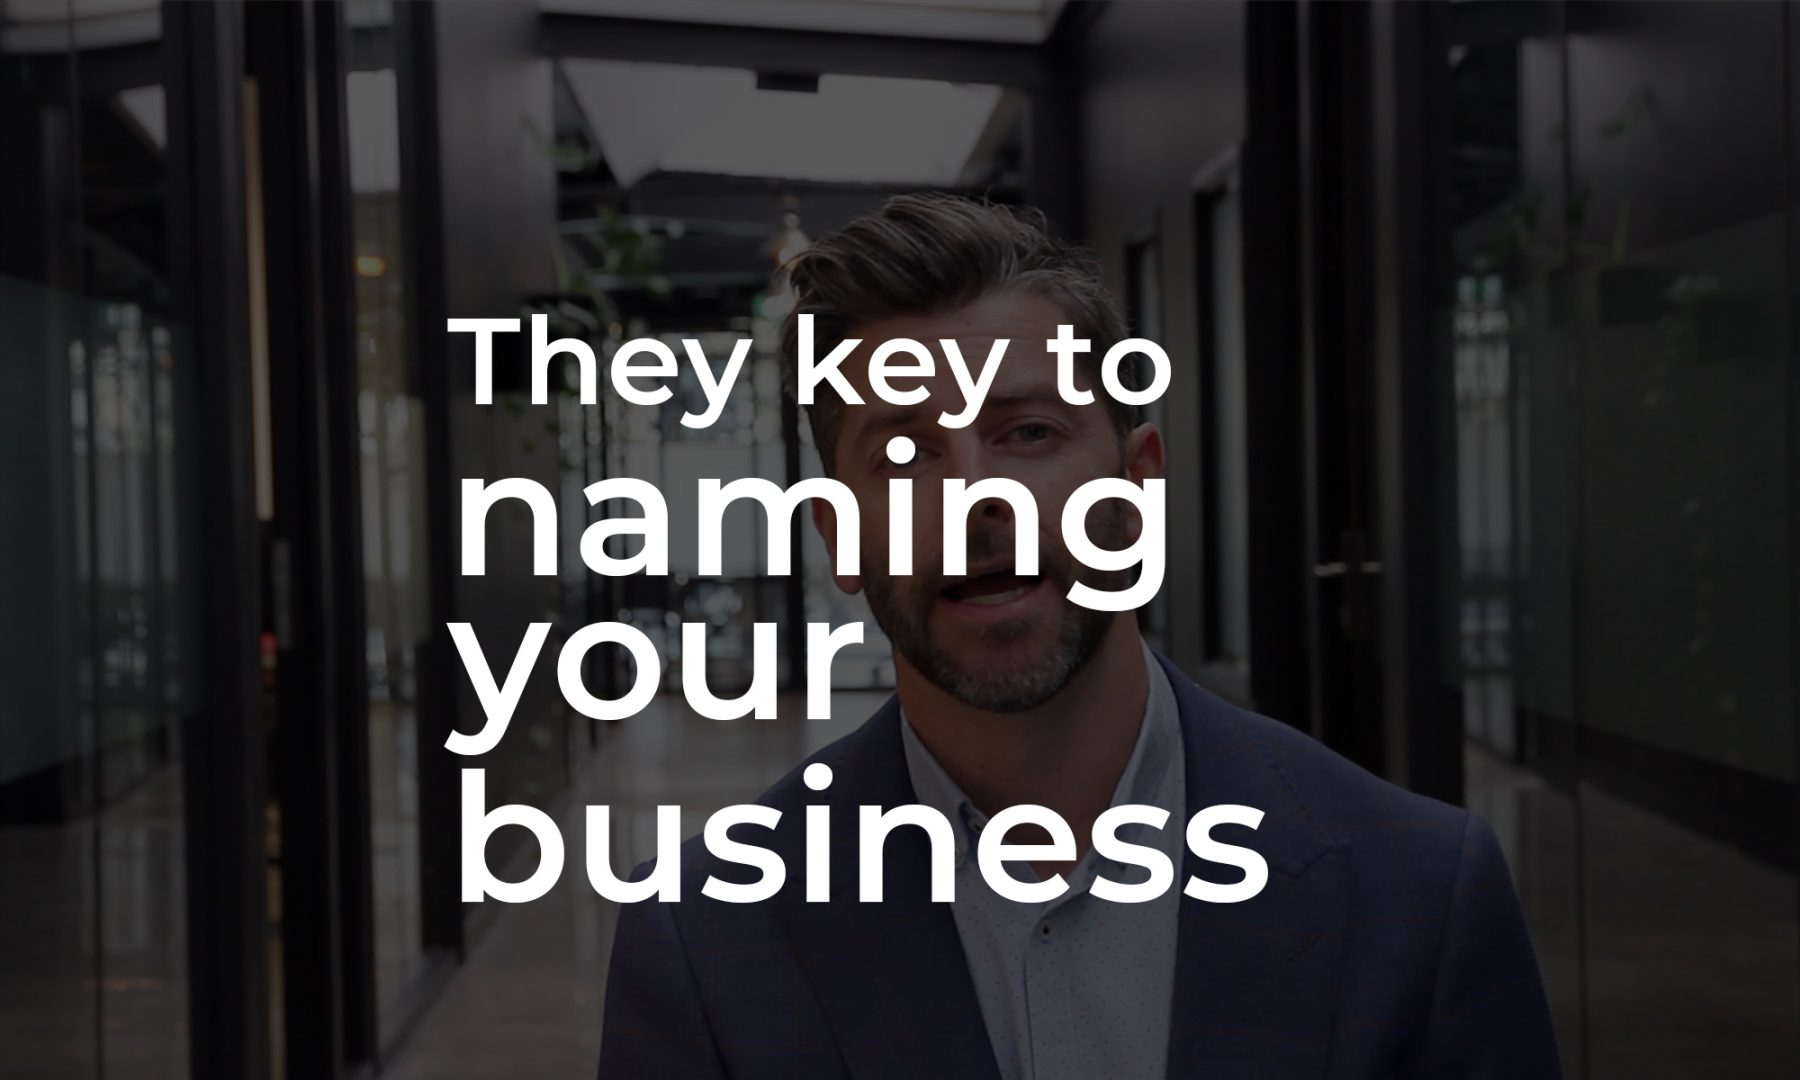 The key to naming your business